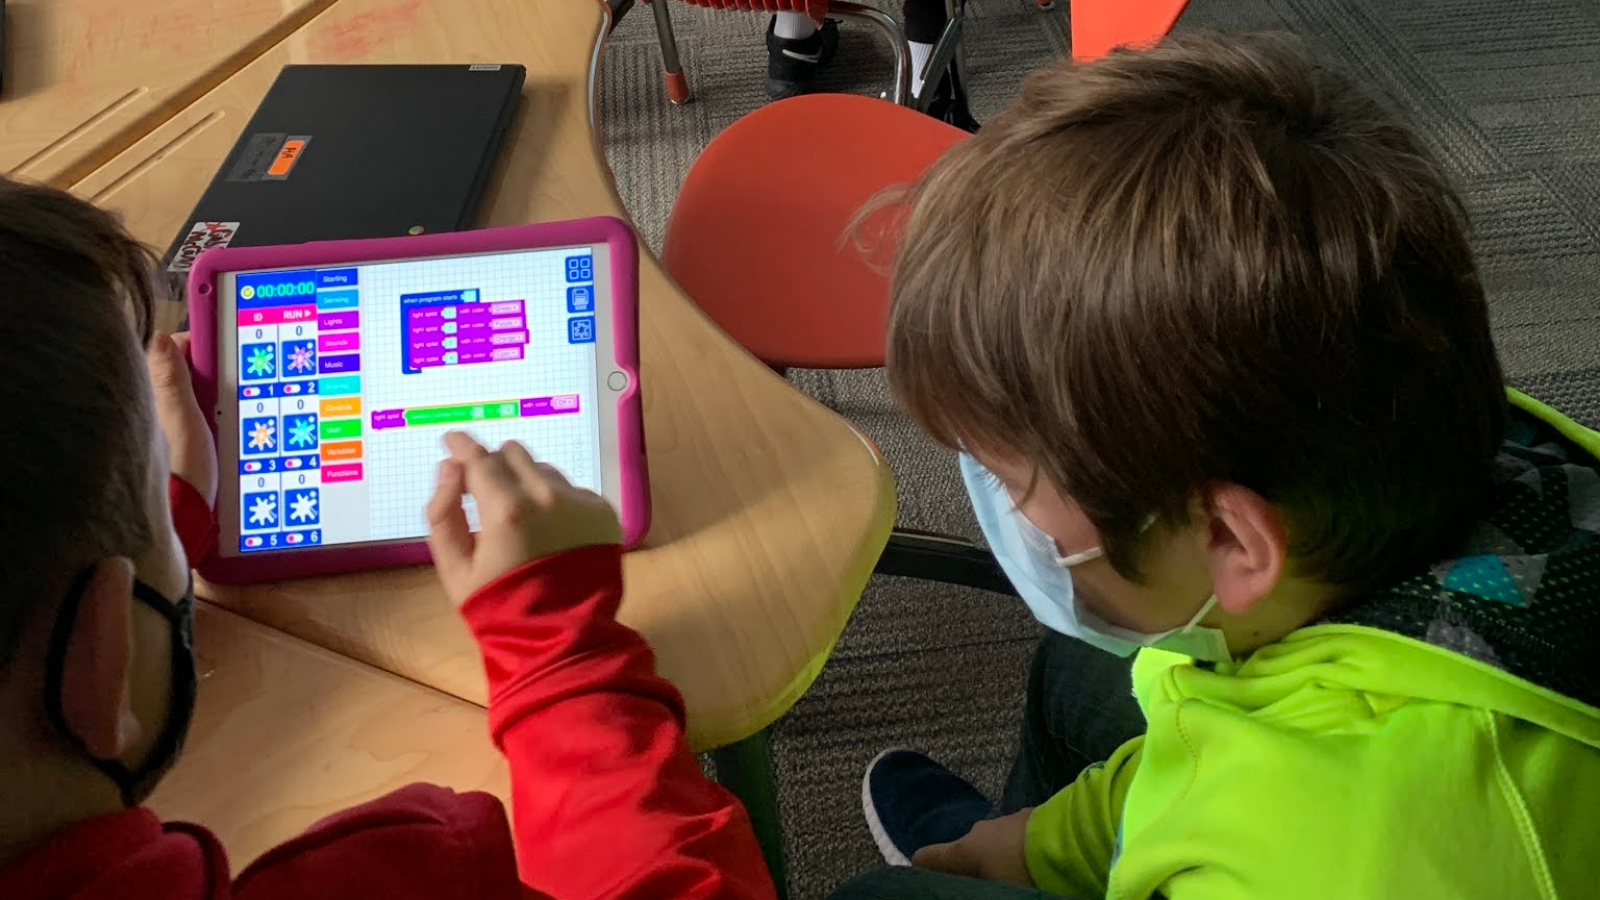 4 Ways to Use Technology in the Classroom to Empower Students